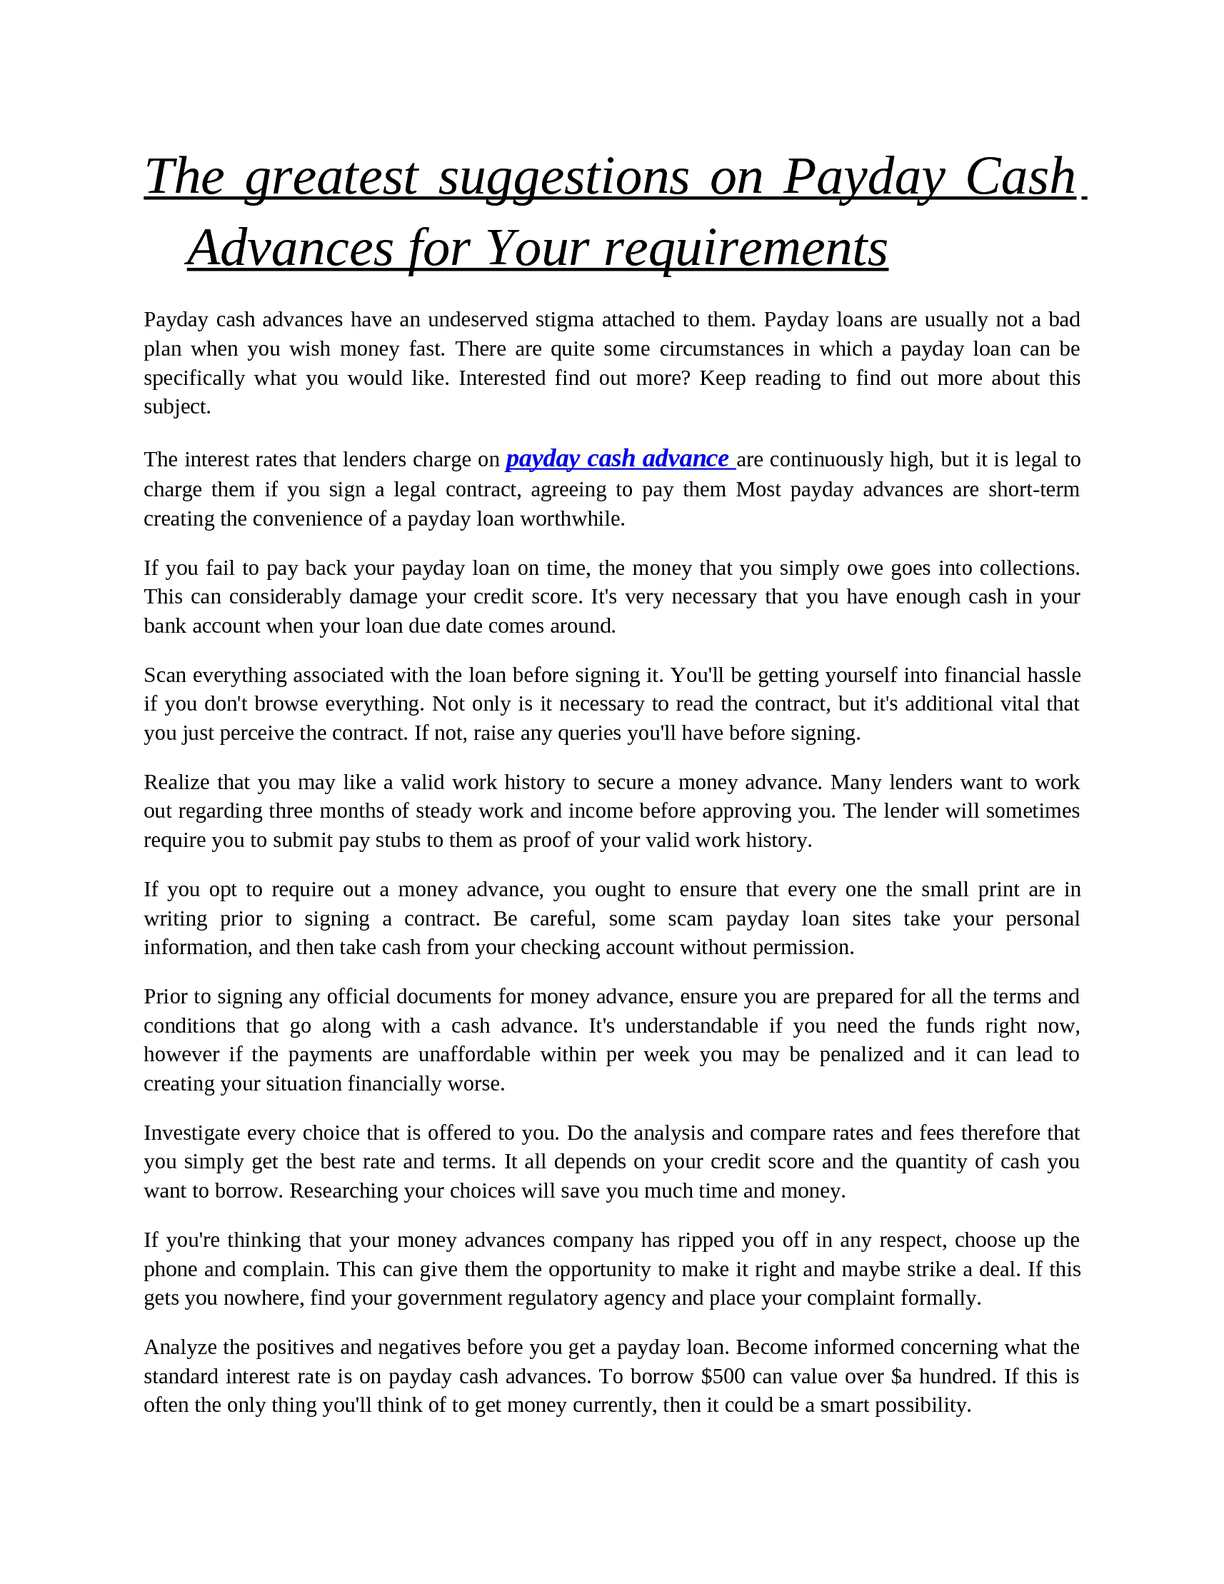 Only Read This If Youre Prepared To >> Calameo The Greatest Suggestions On Payday Cash Advances For Your